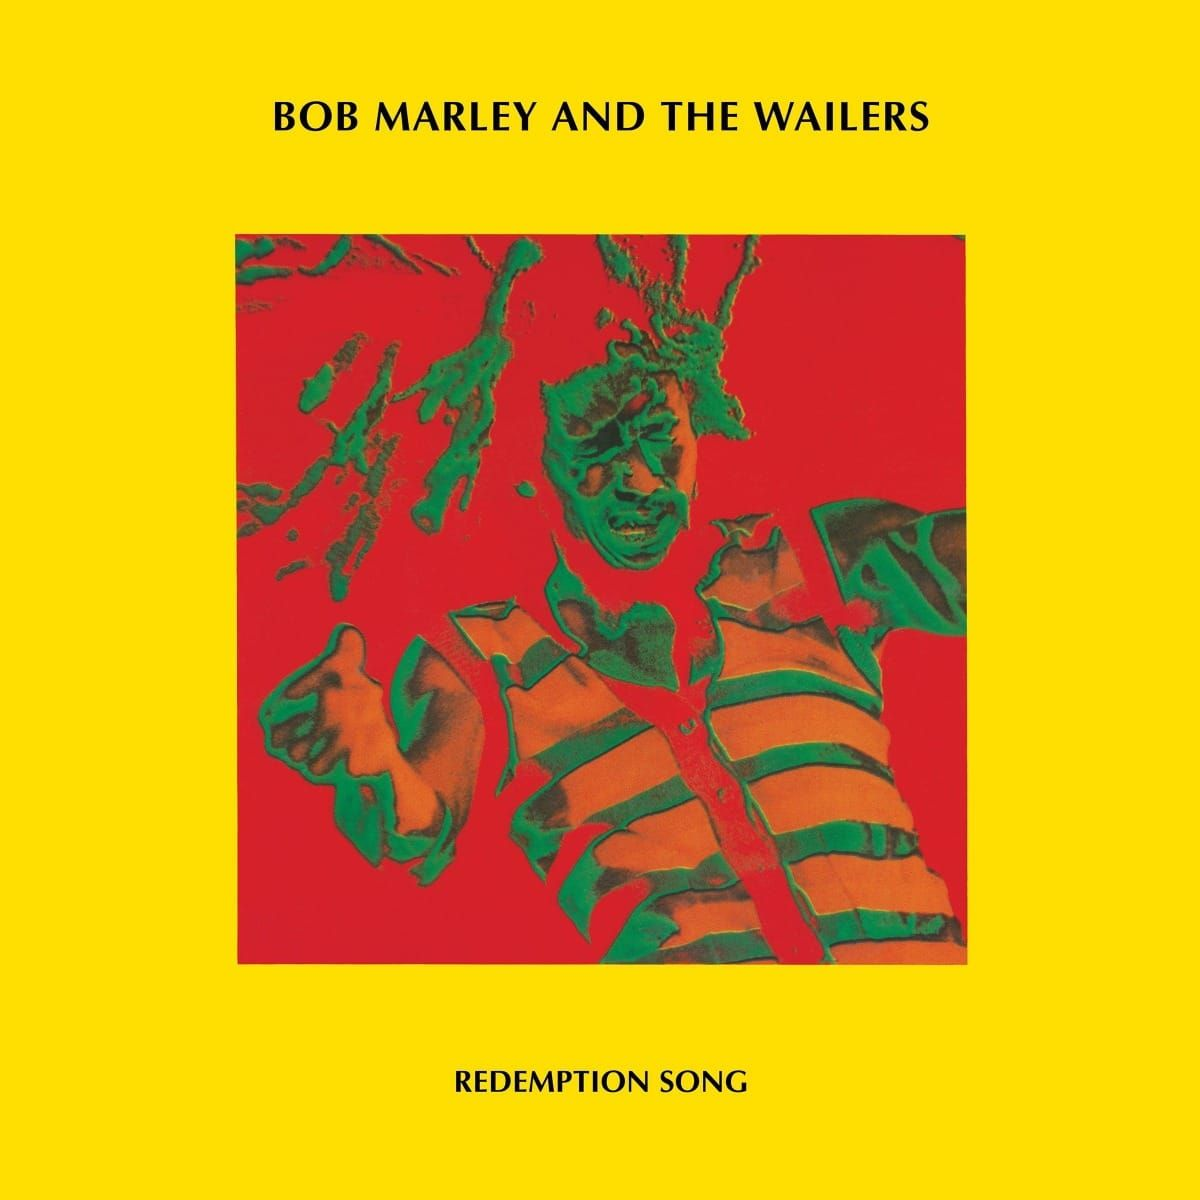 BOB MARLEY AND THE WAILERS - REDEMPTION SONG - RSD20